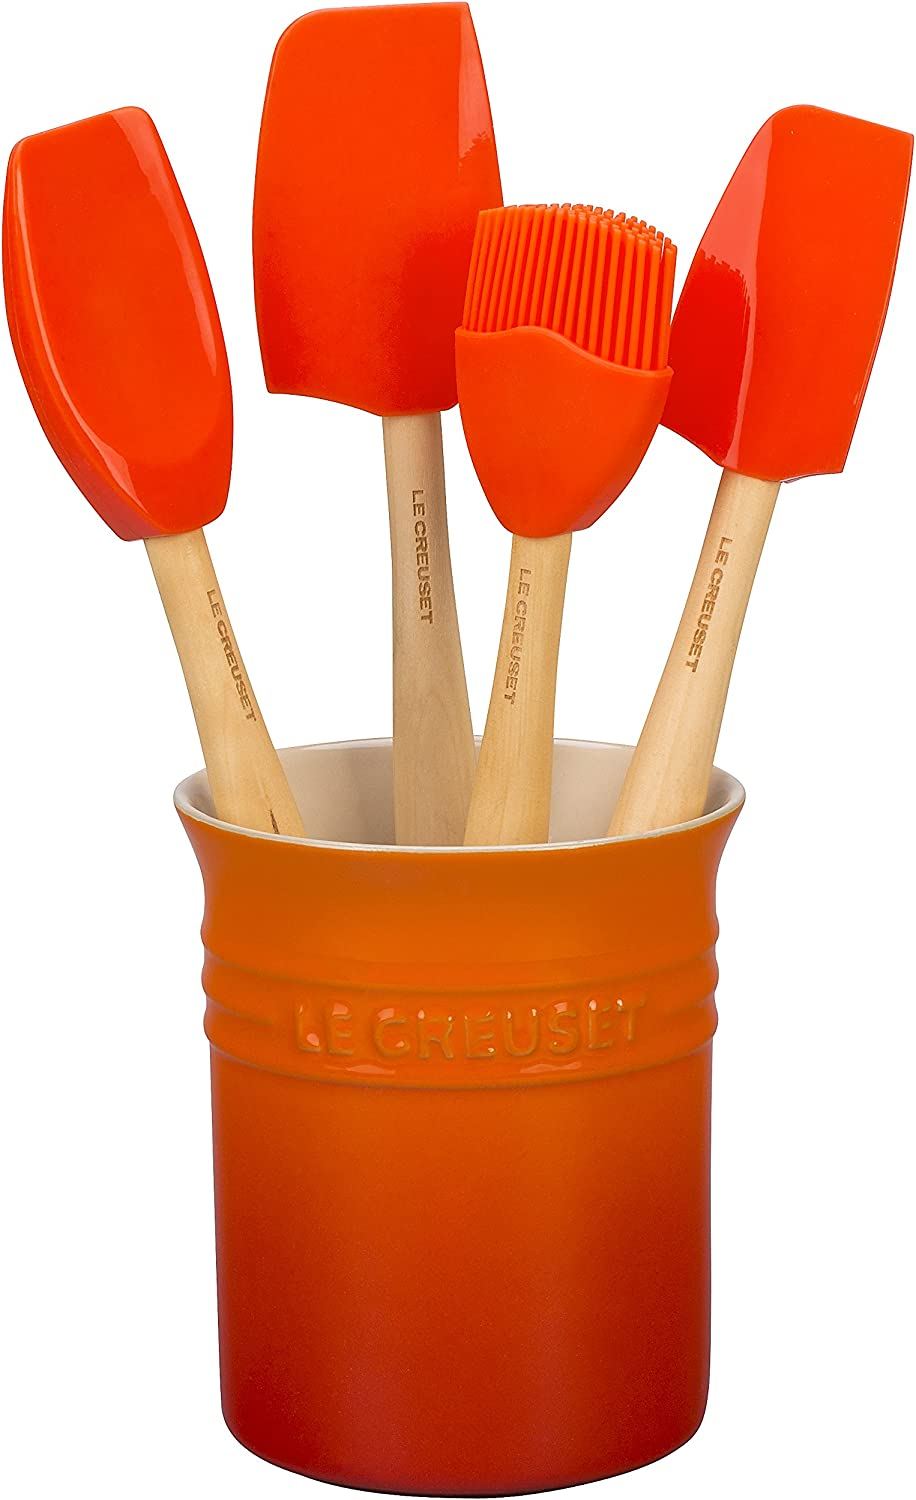 Le Creuset of America Craft Series 5Piece Utensil Set with Crock - Flame